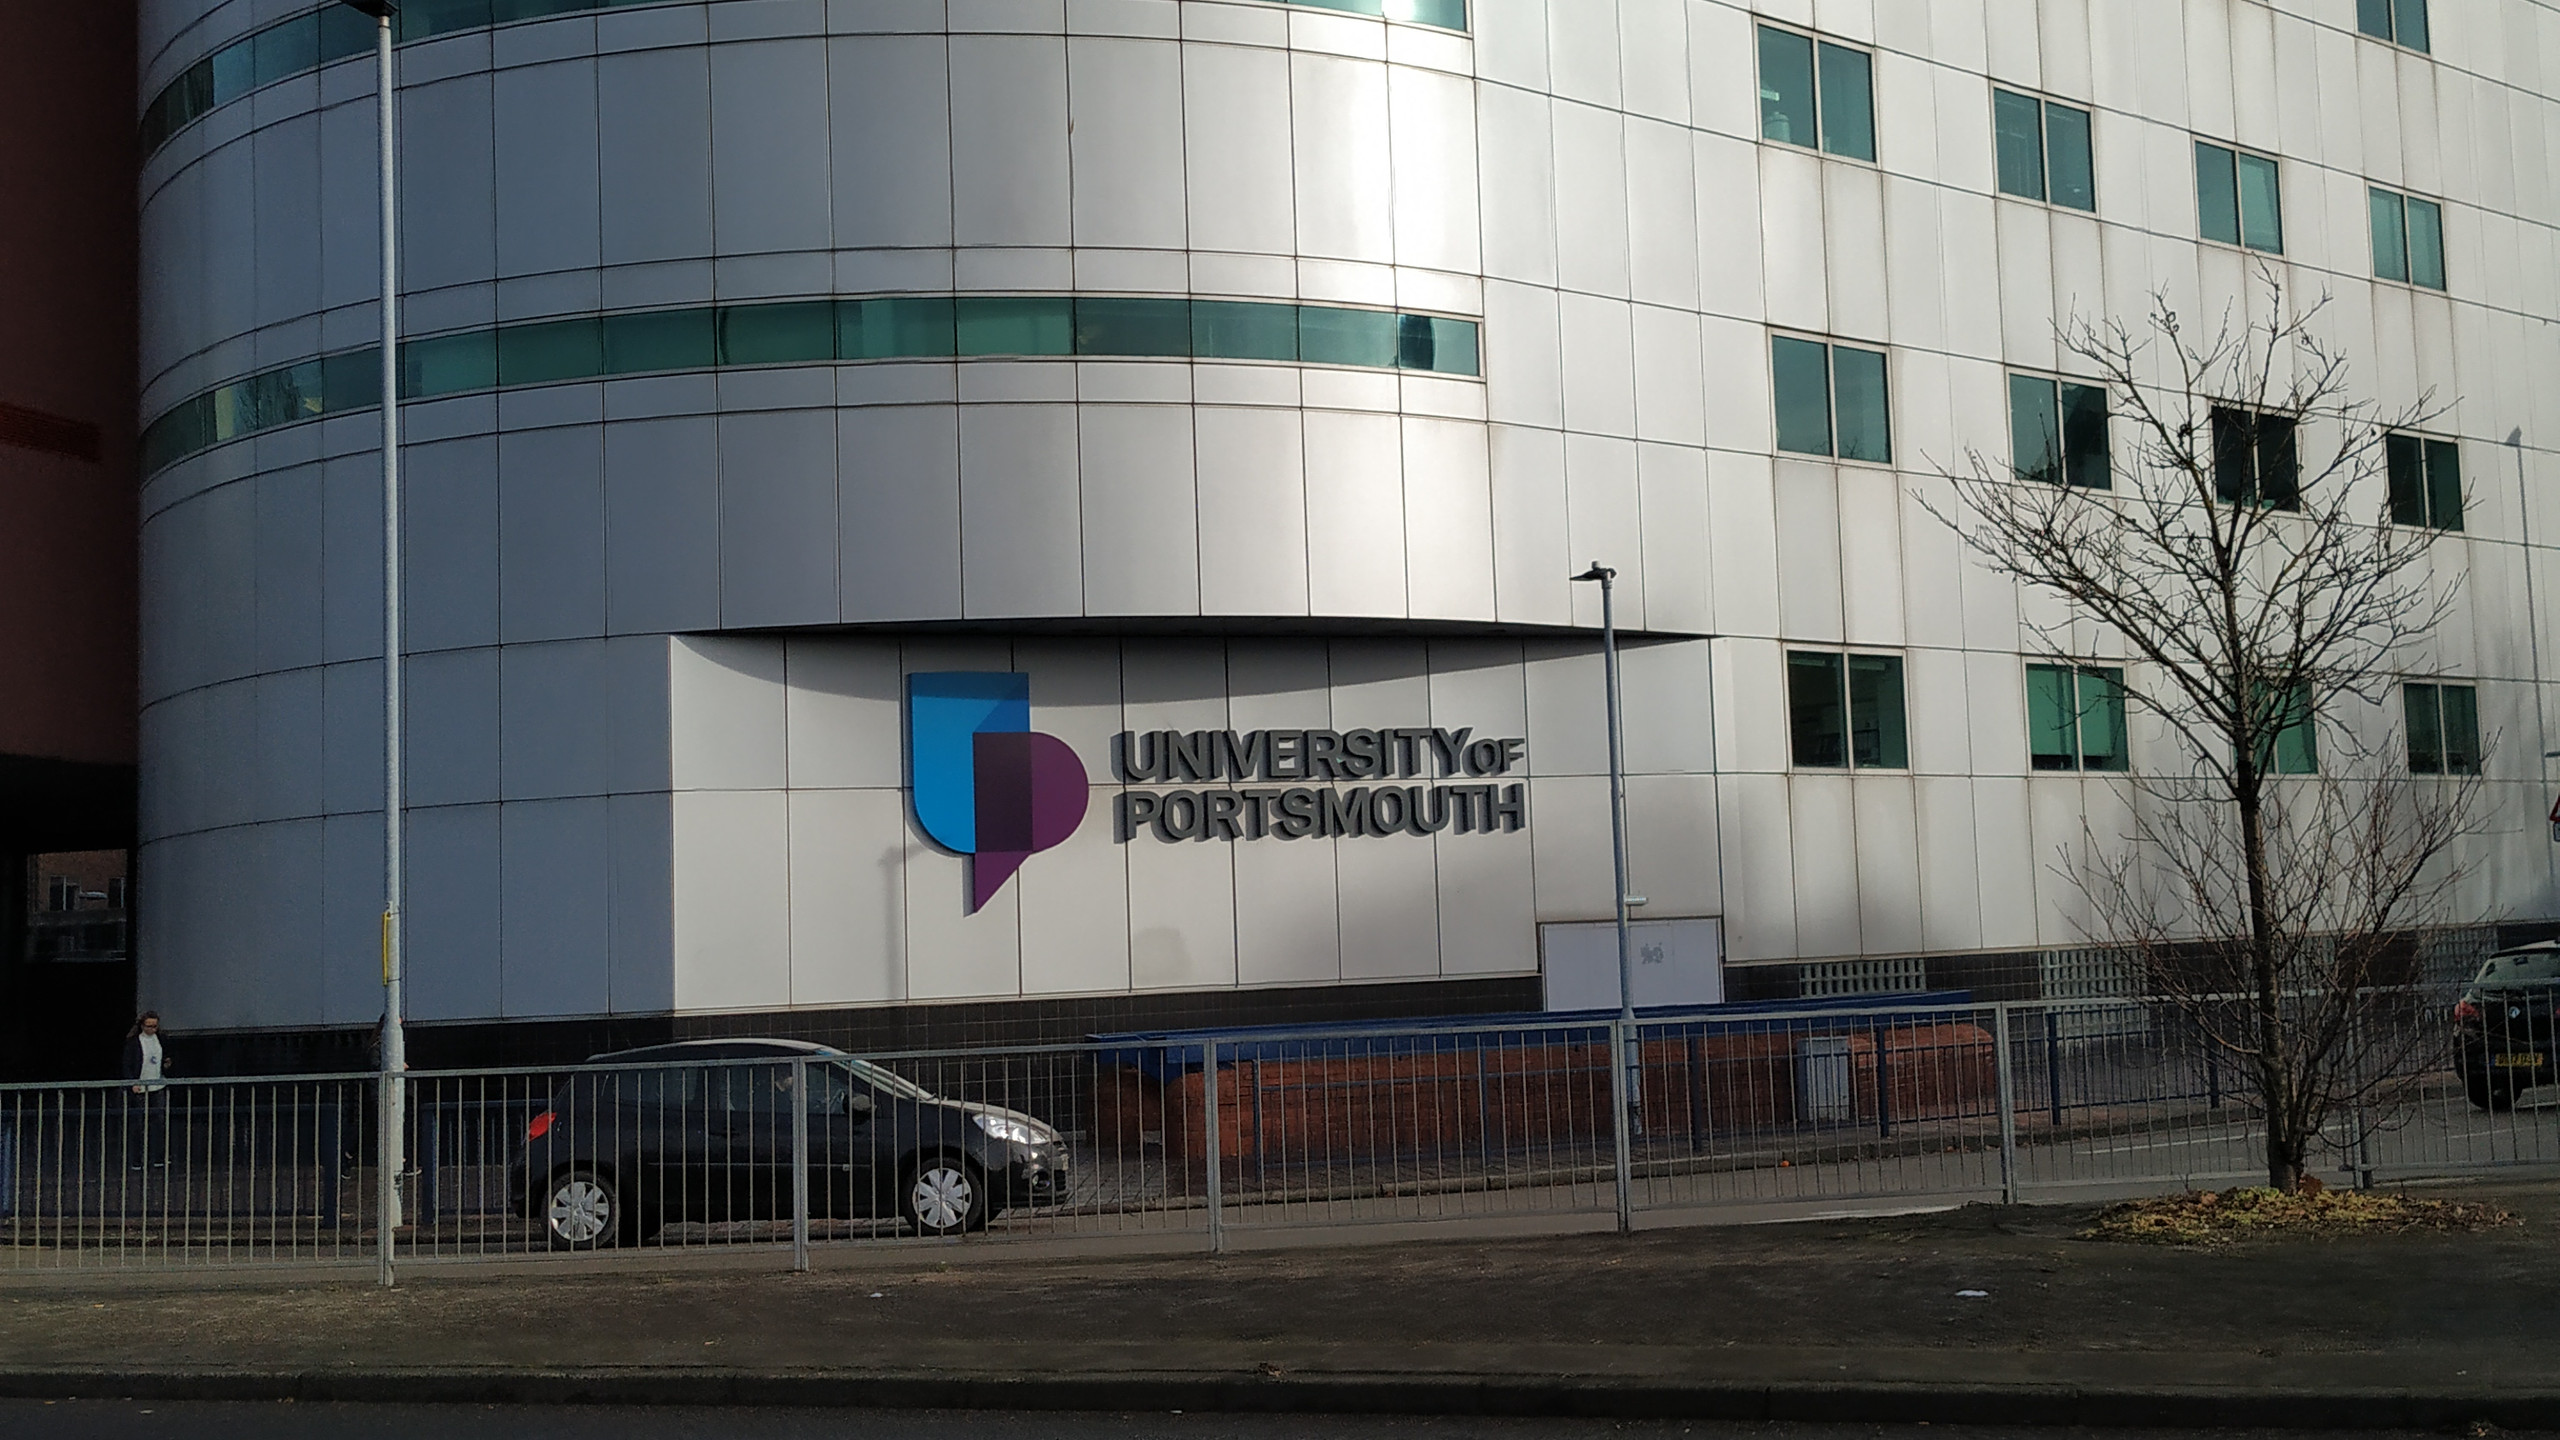 University-of-Portsmouth